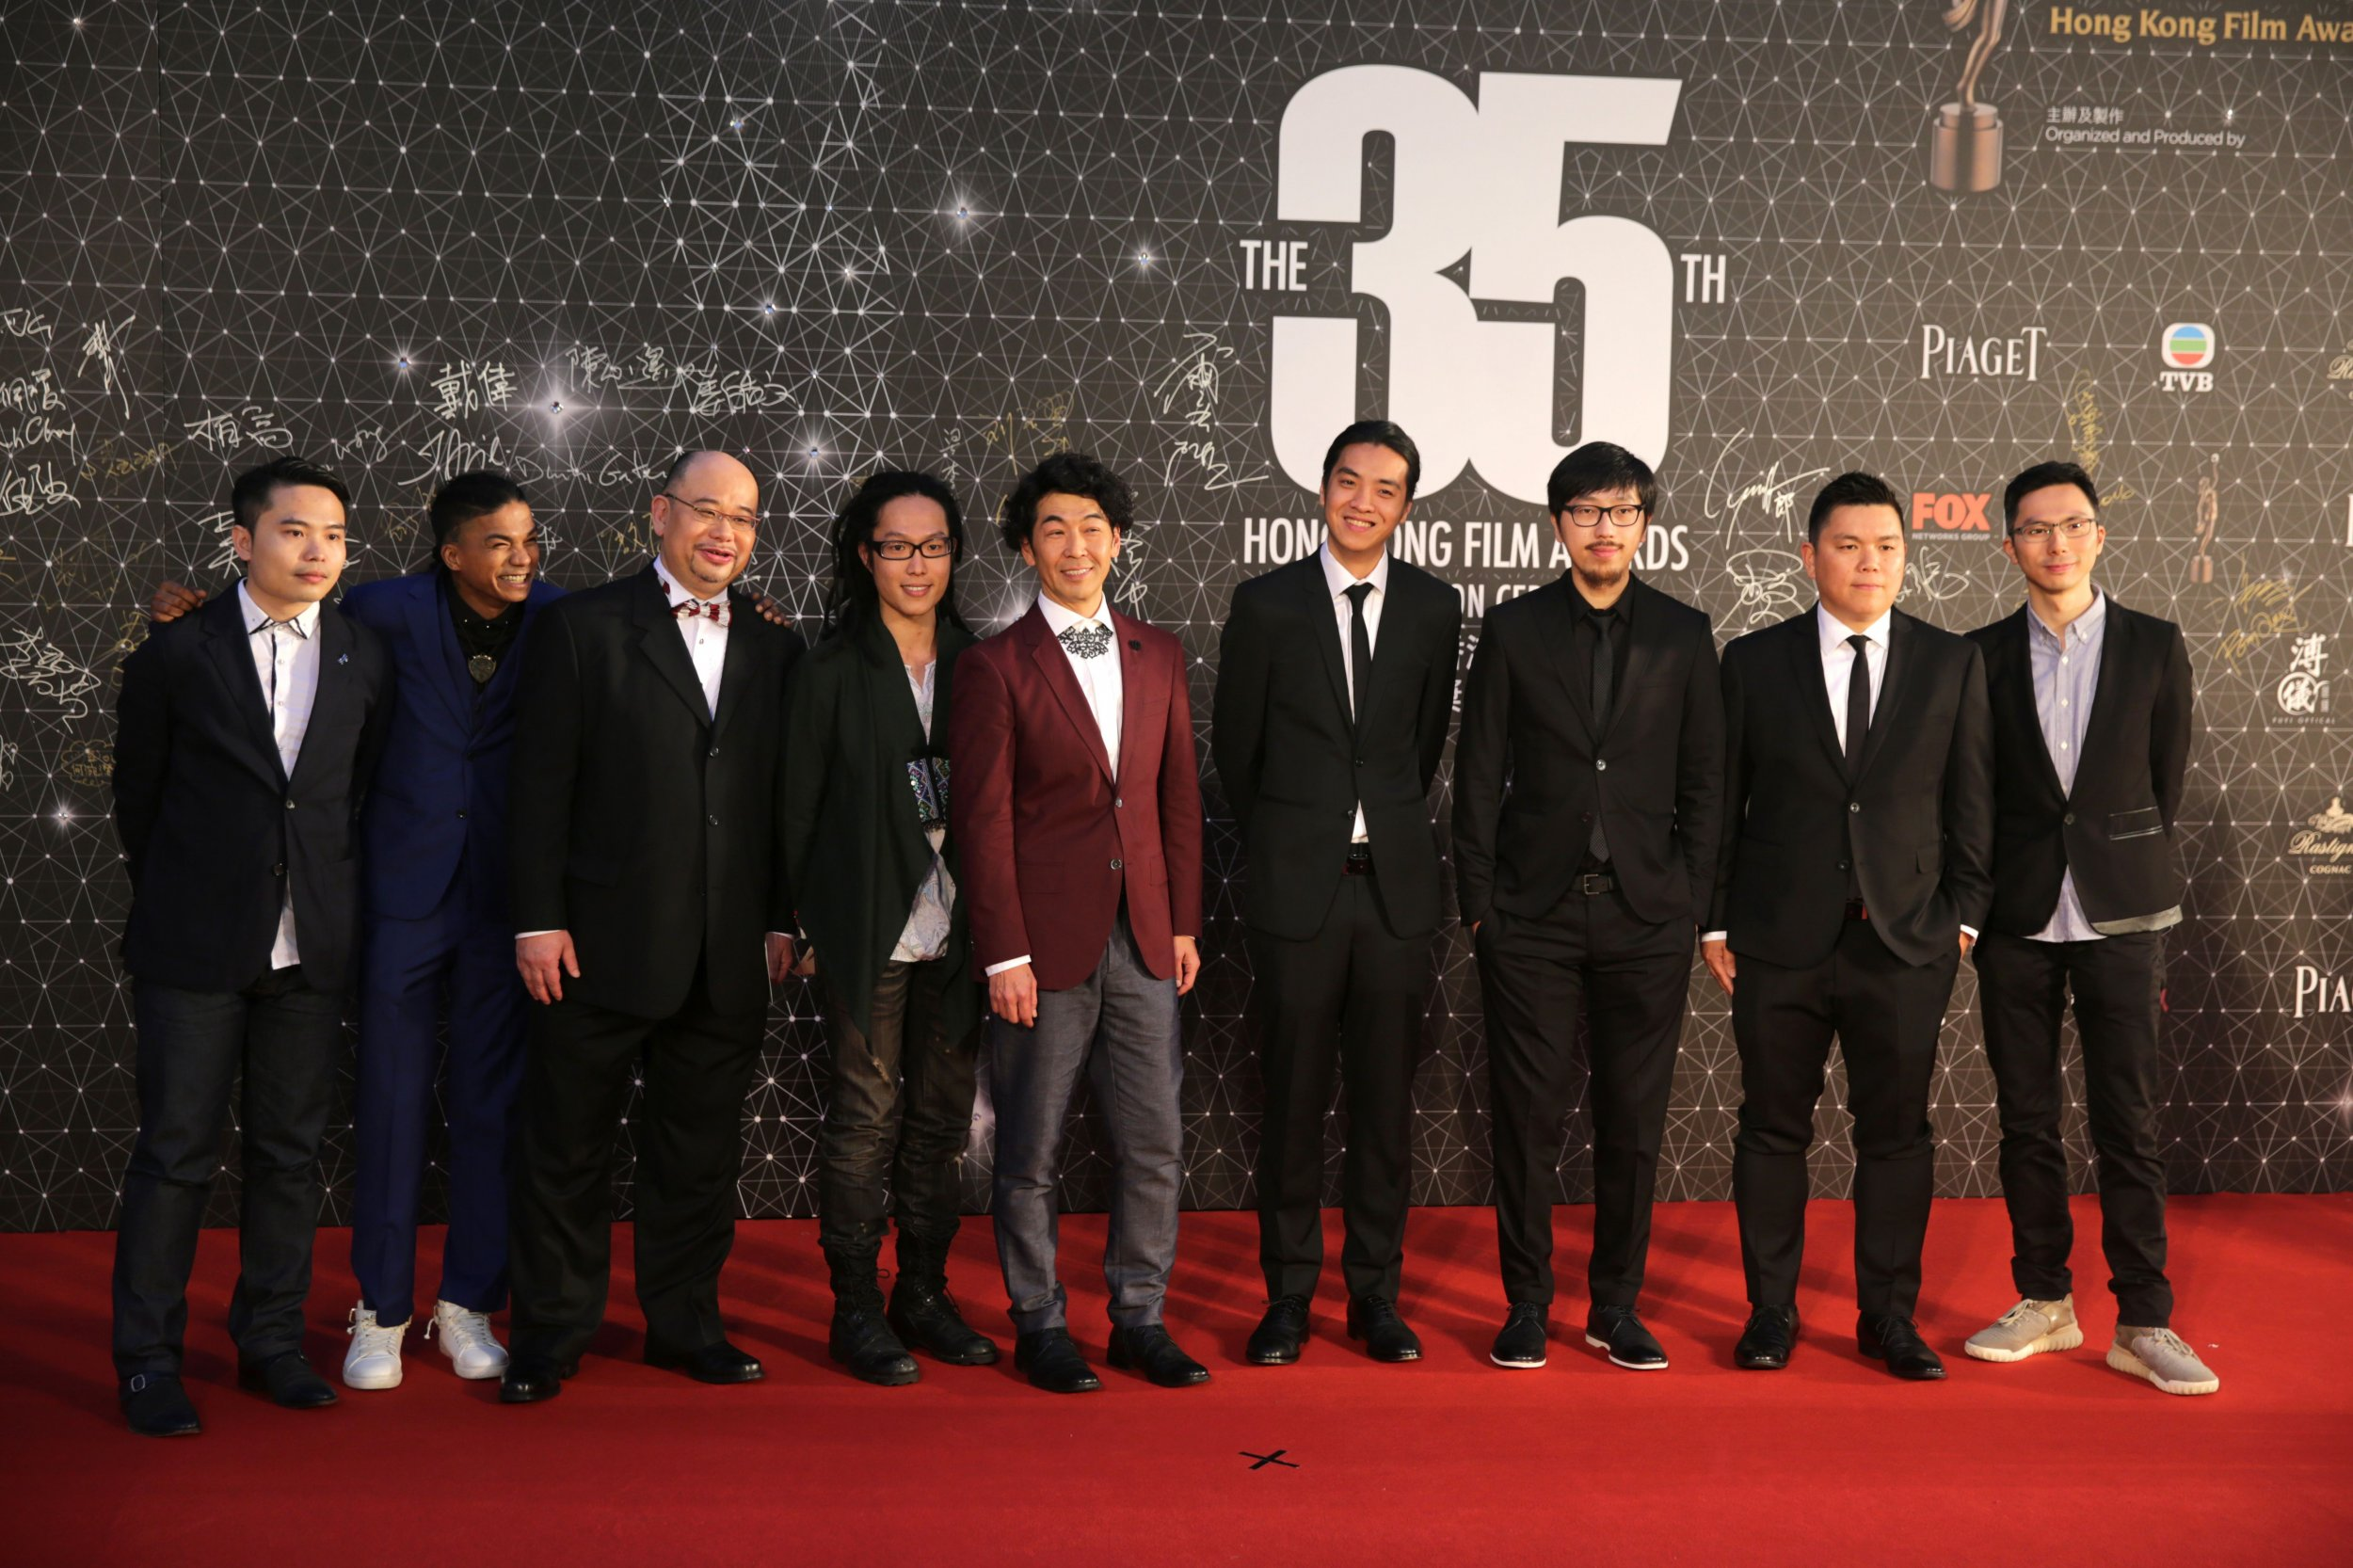 Ten Years cast at Hong Kong Film Awards